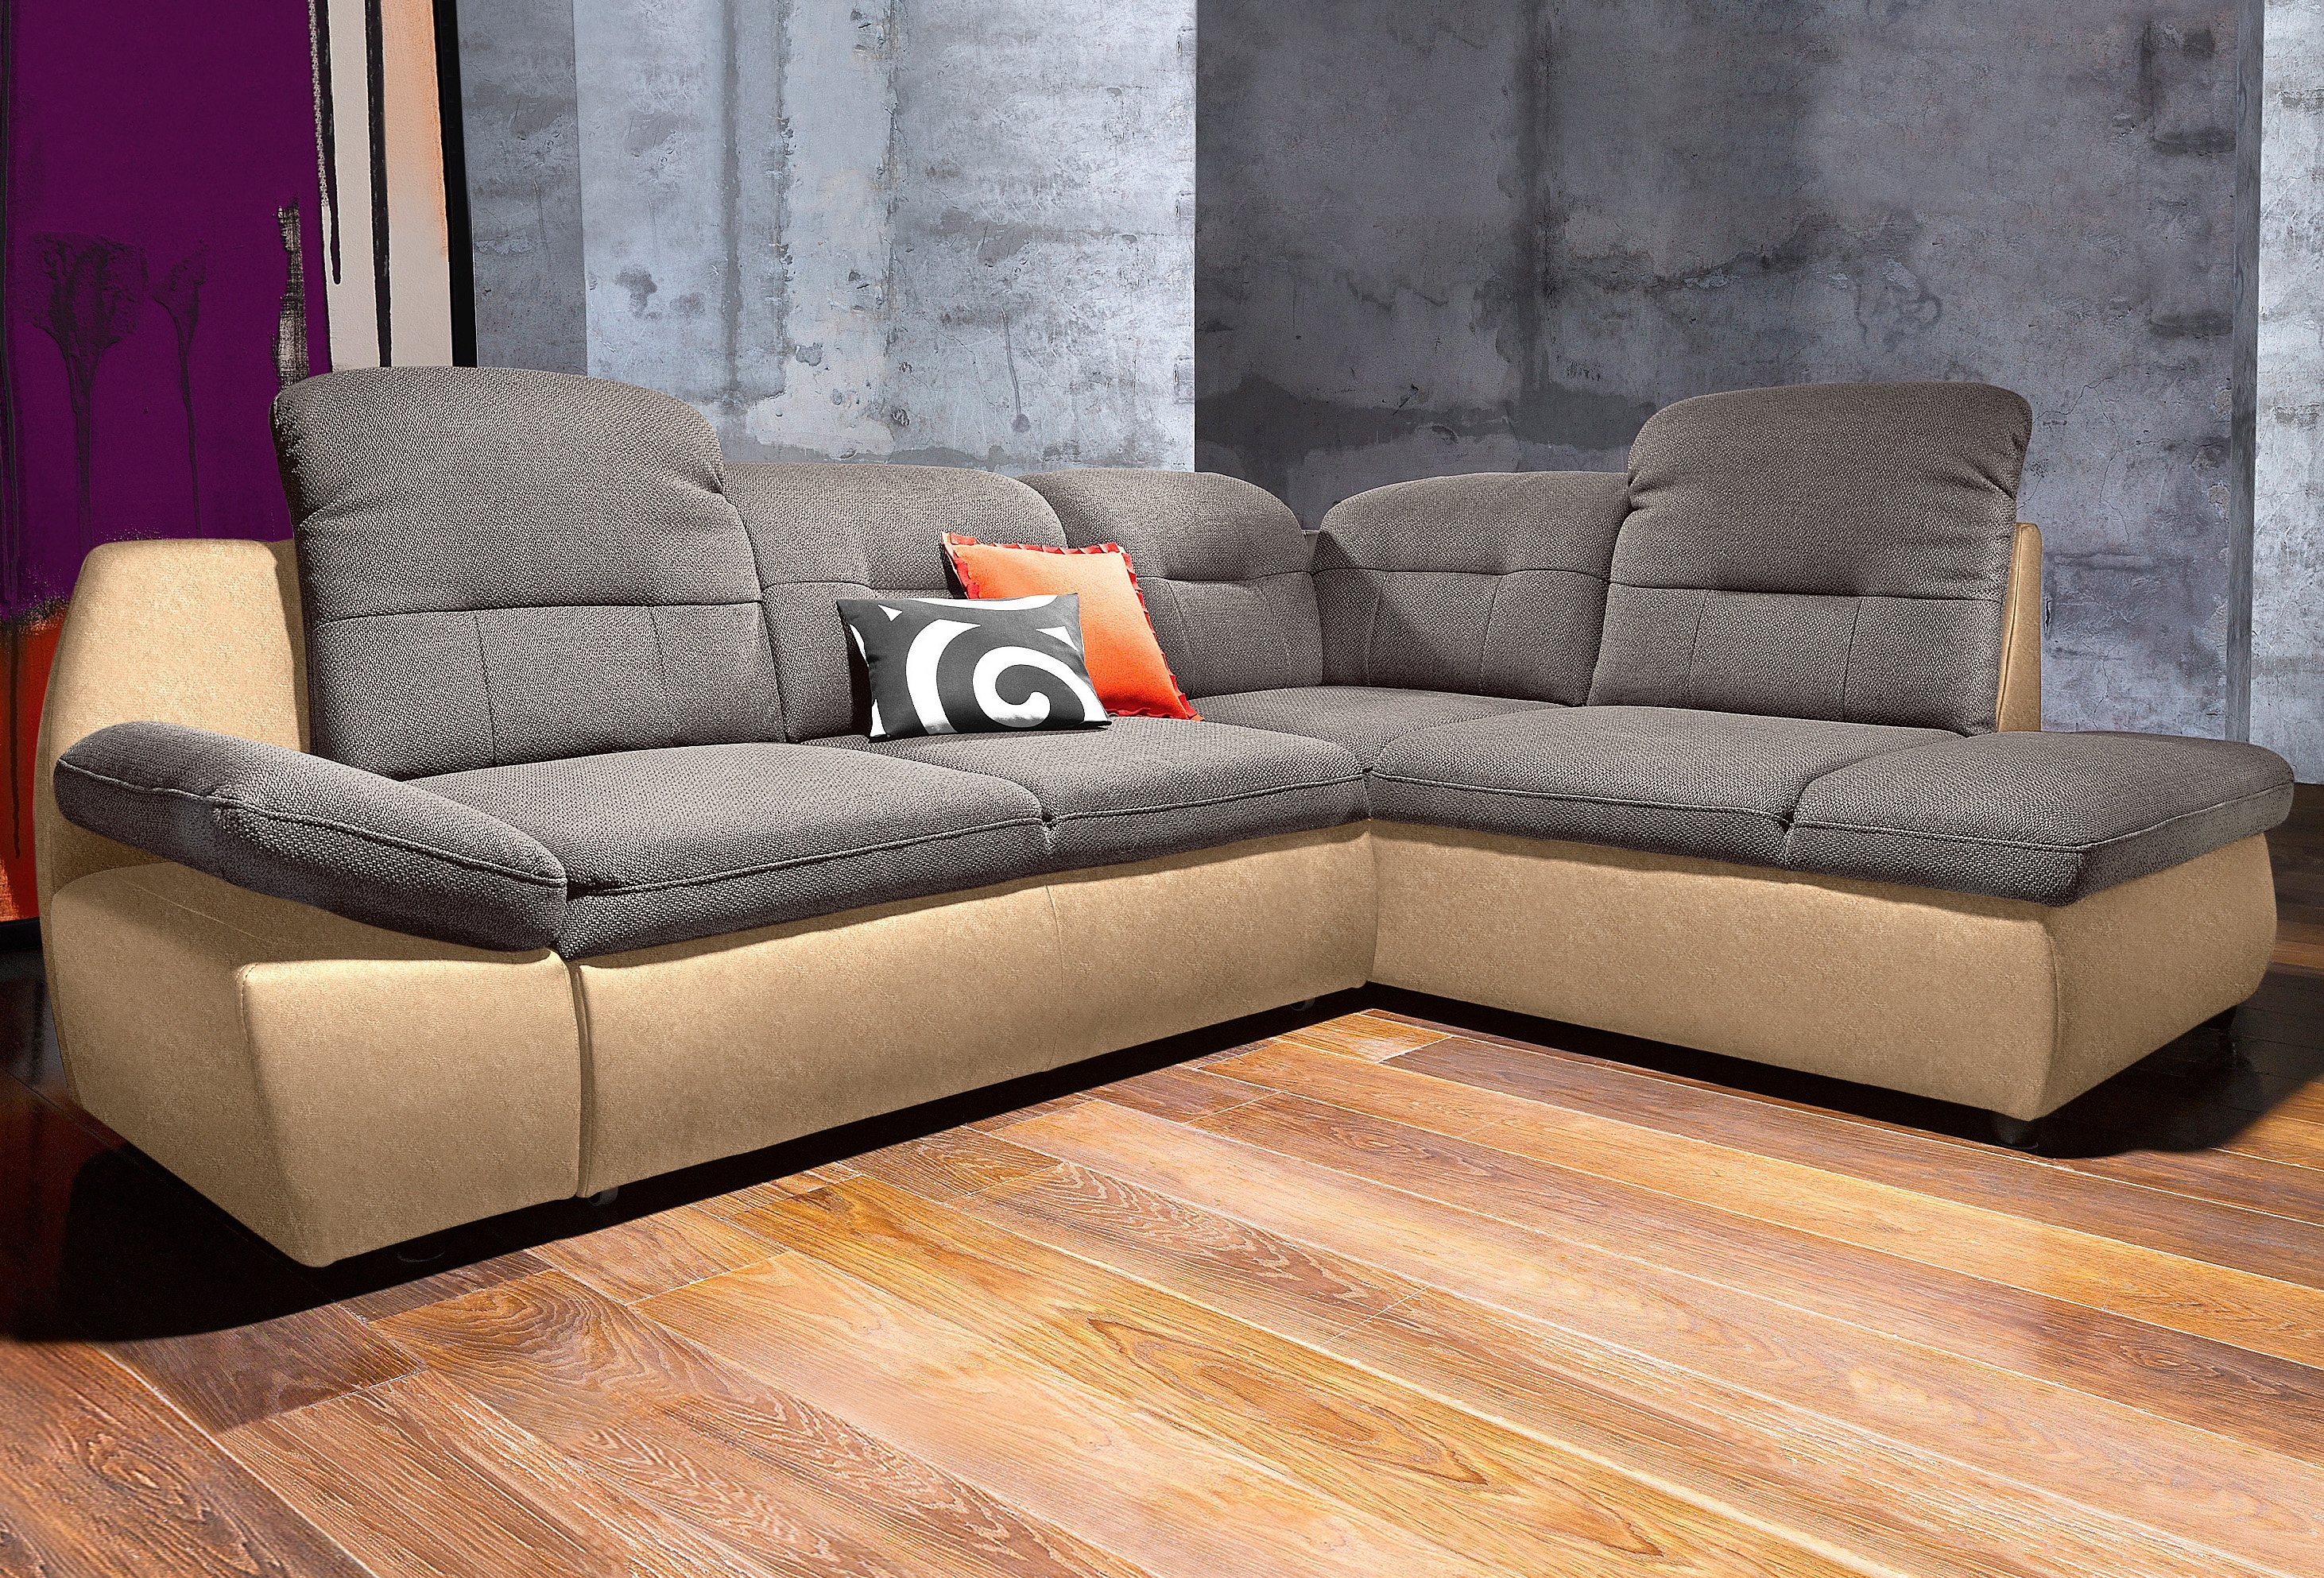 Polsterecke city sofa wahlweise mit bettfunktion natur for Sofa mit bettfunktion